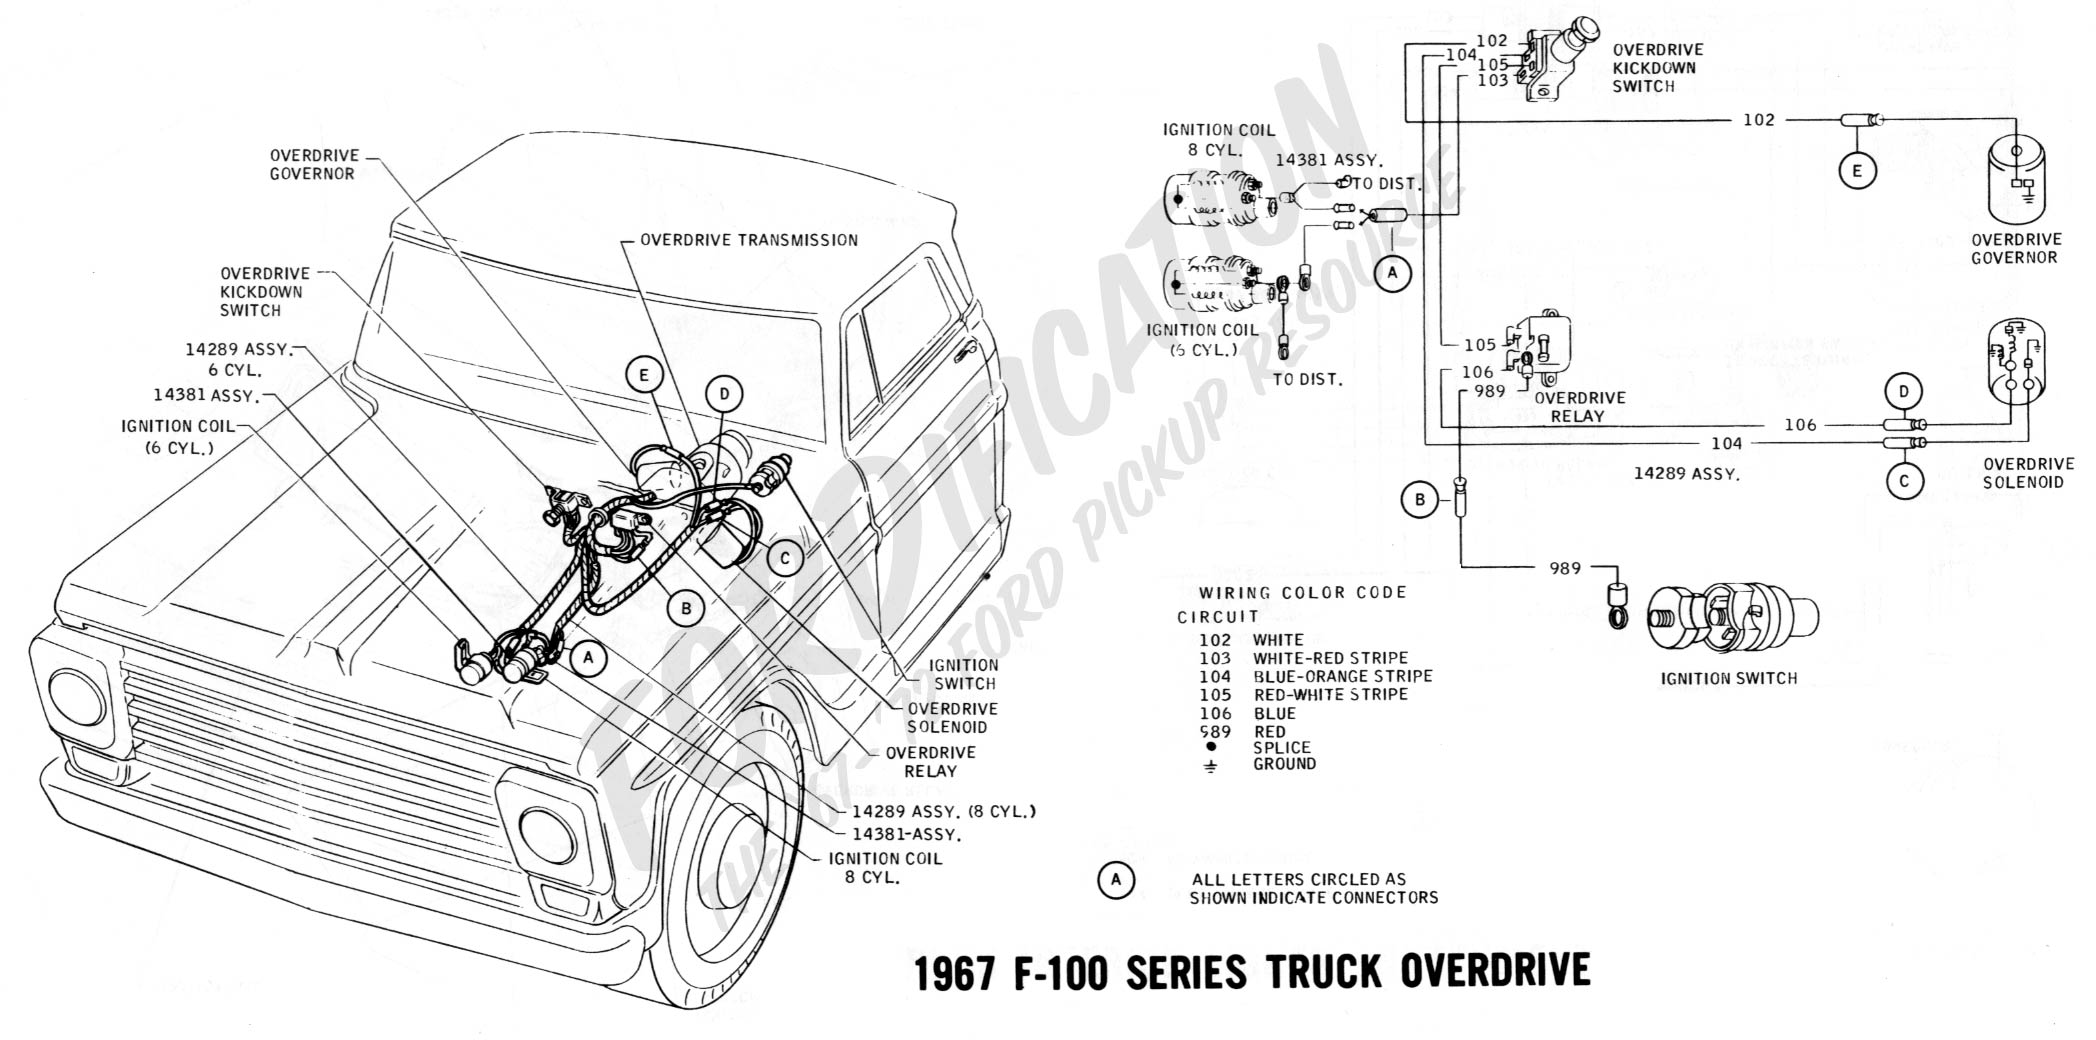 wiring 1967overdrive2 ford truck technical drawings and schematics section h wiring wiring diagram for 67 to 72 chevy truck at readyjetset.co